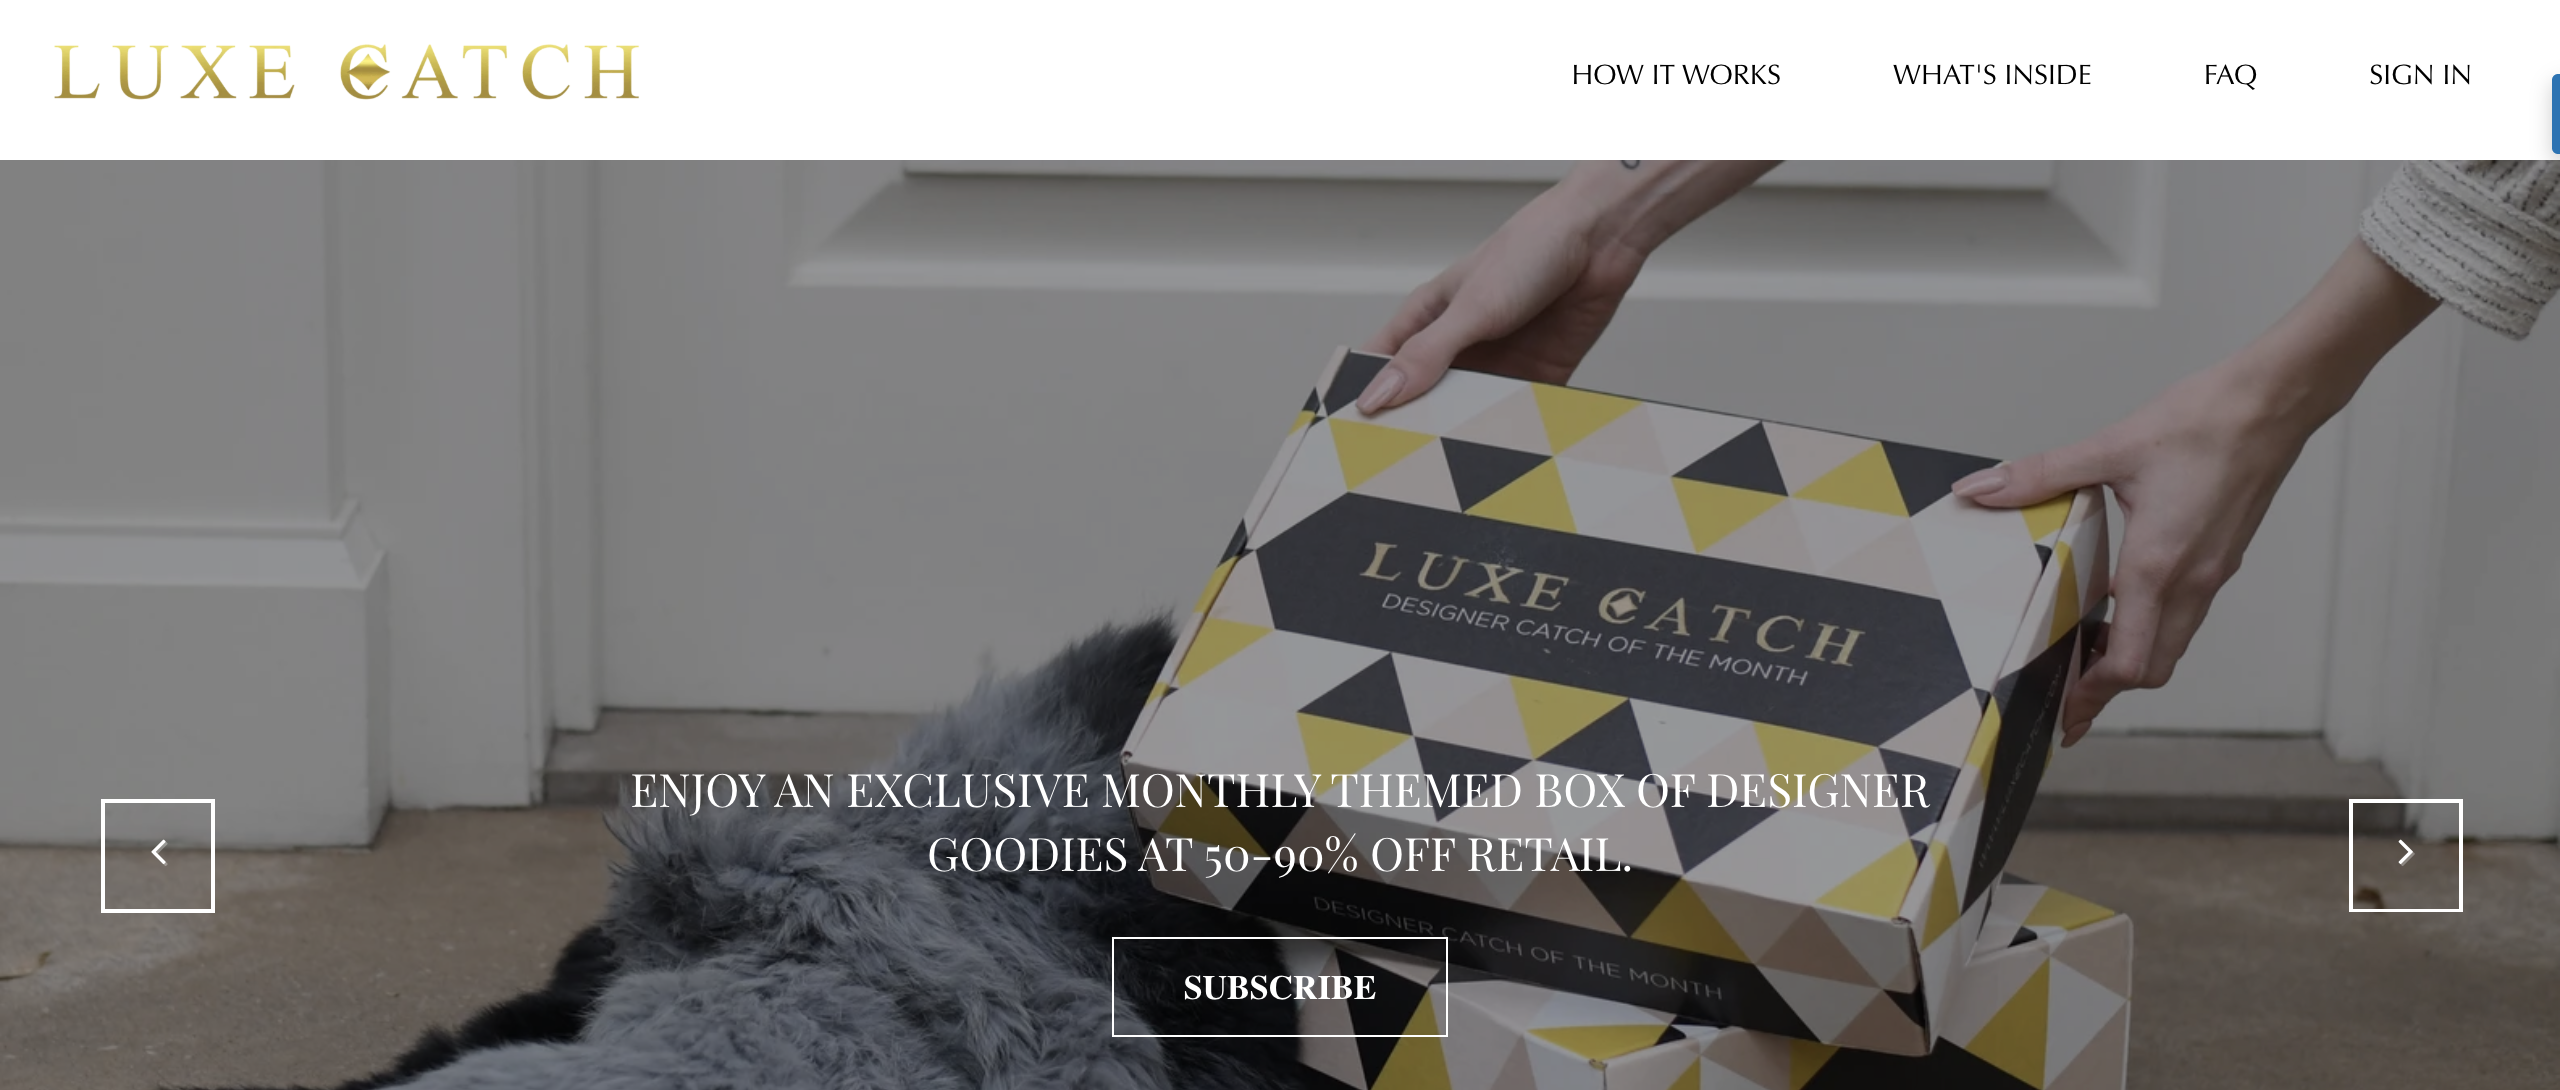 Luxe Catch